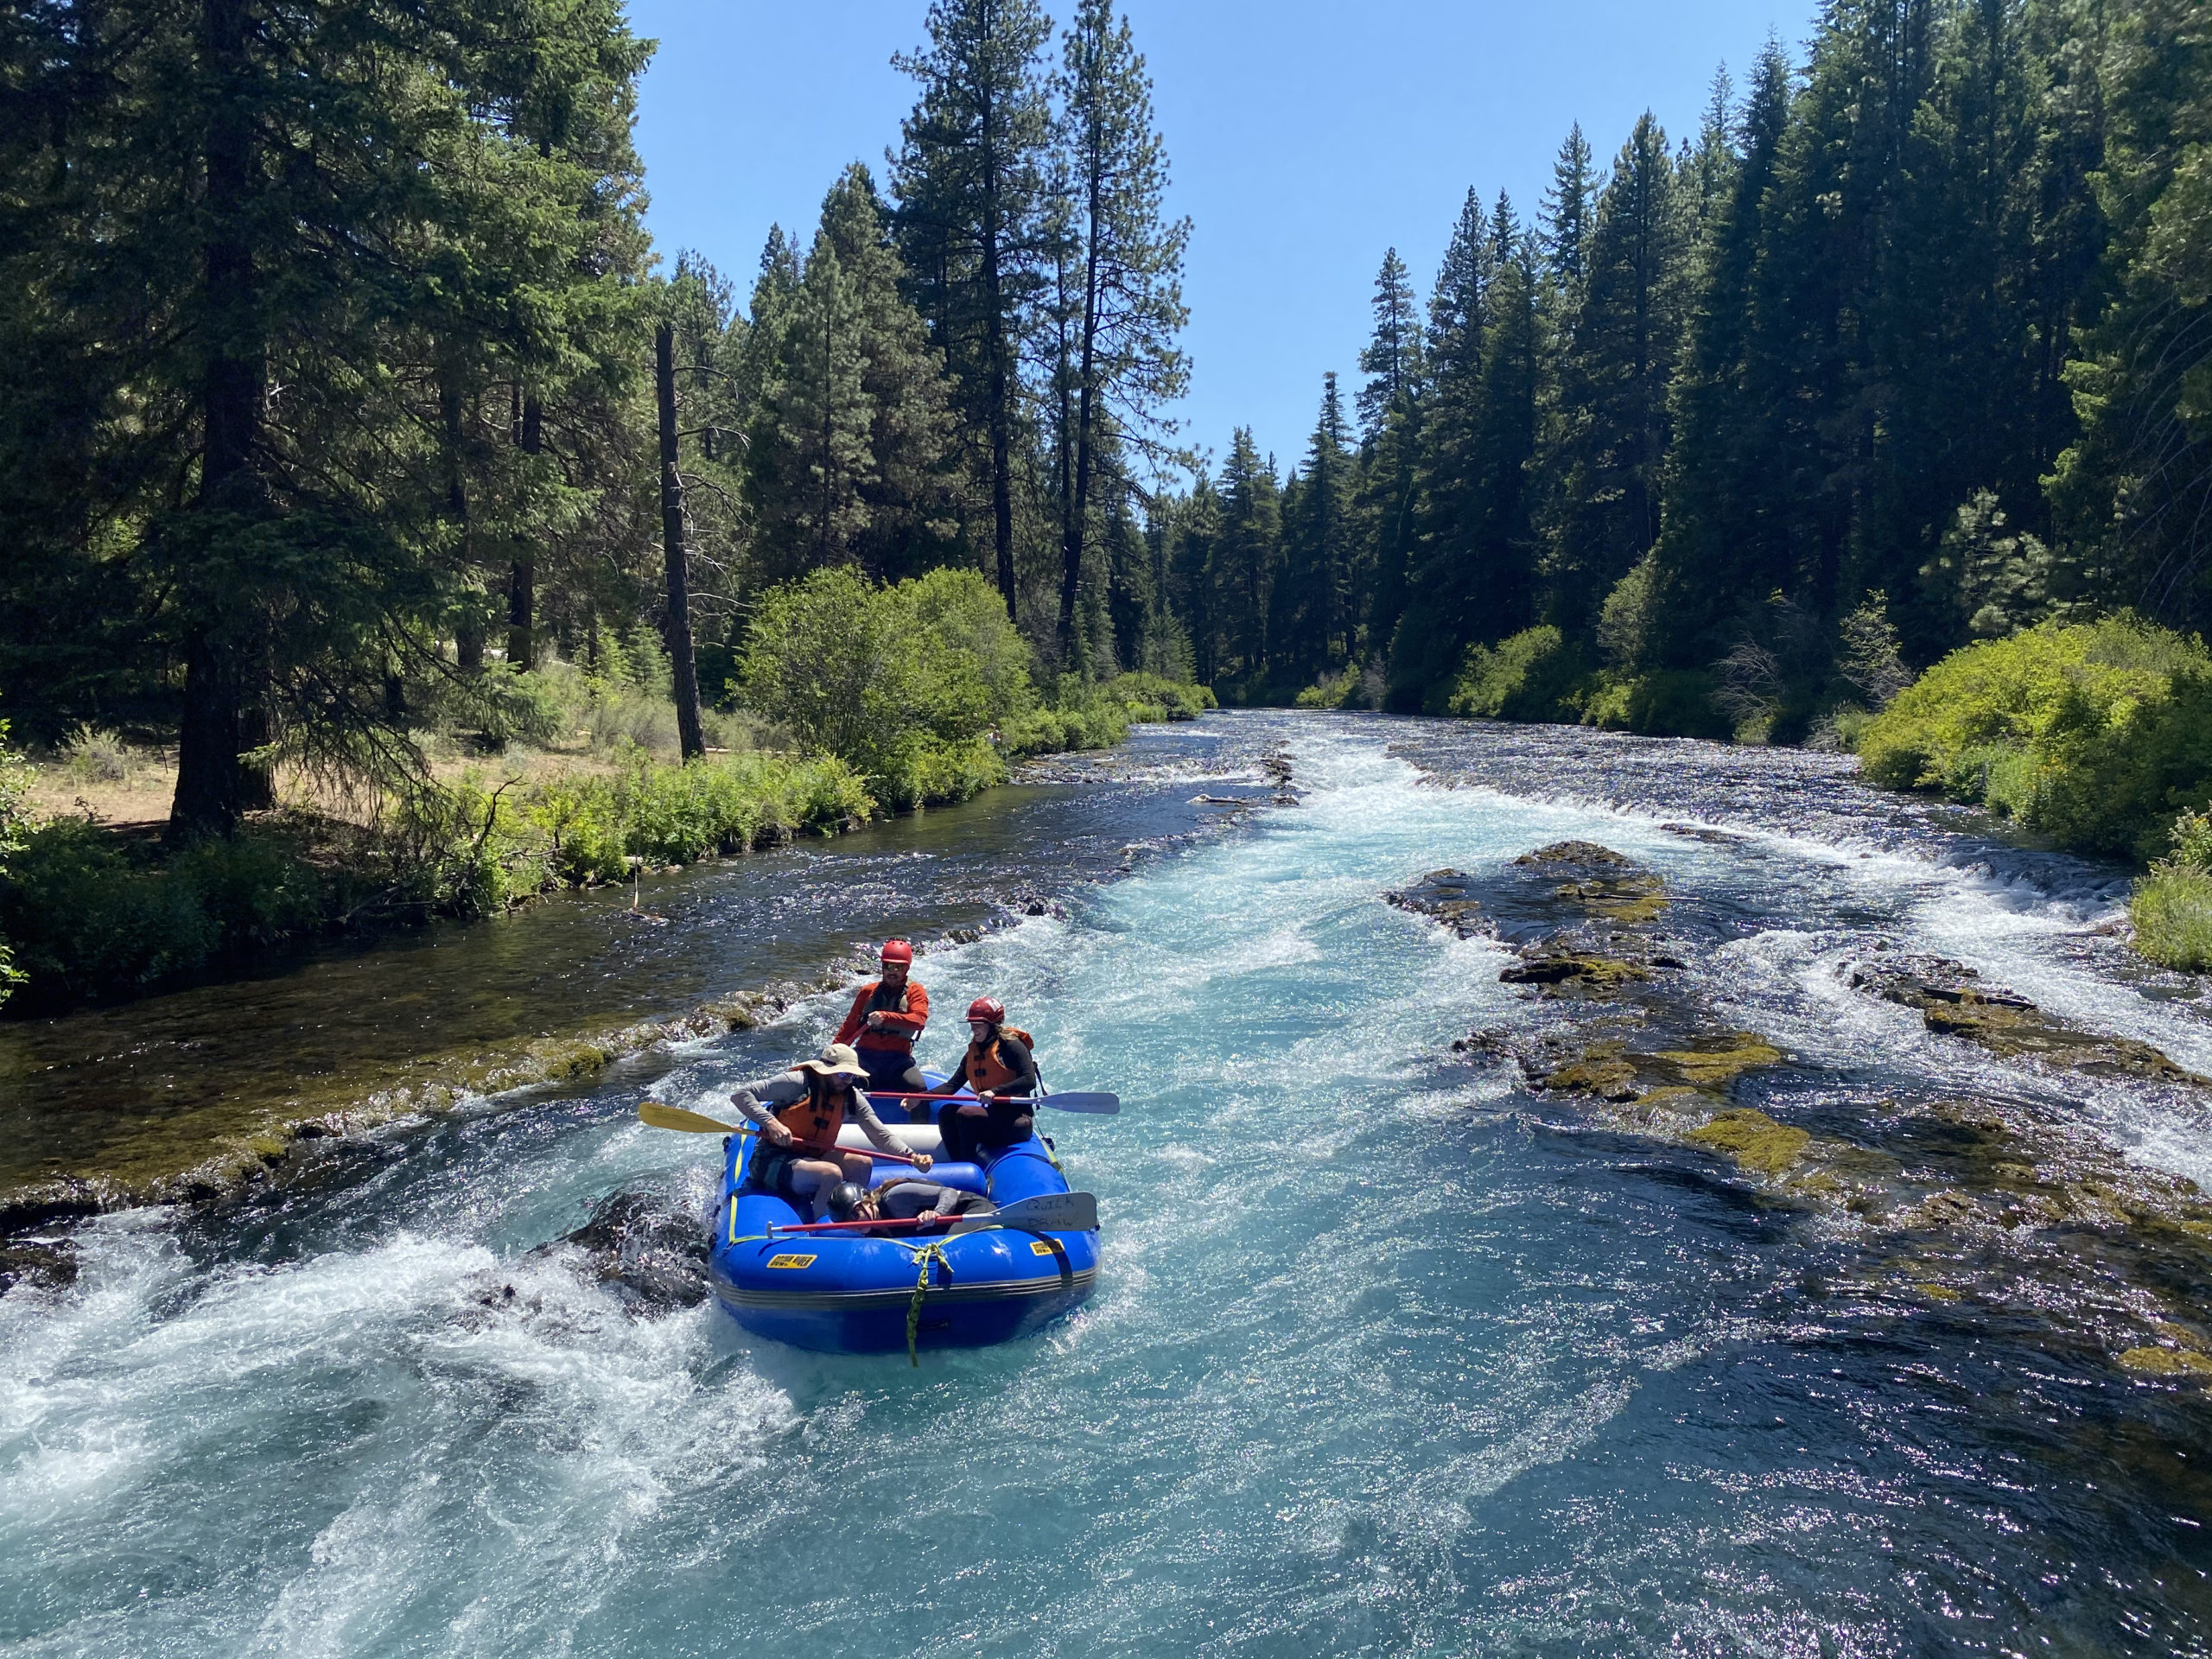 Rafters going underneath the vehicle bridge at Wizard Falls fish hatchery on the Metolius River.